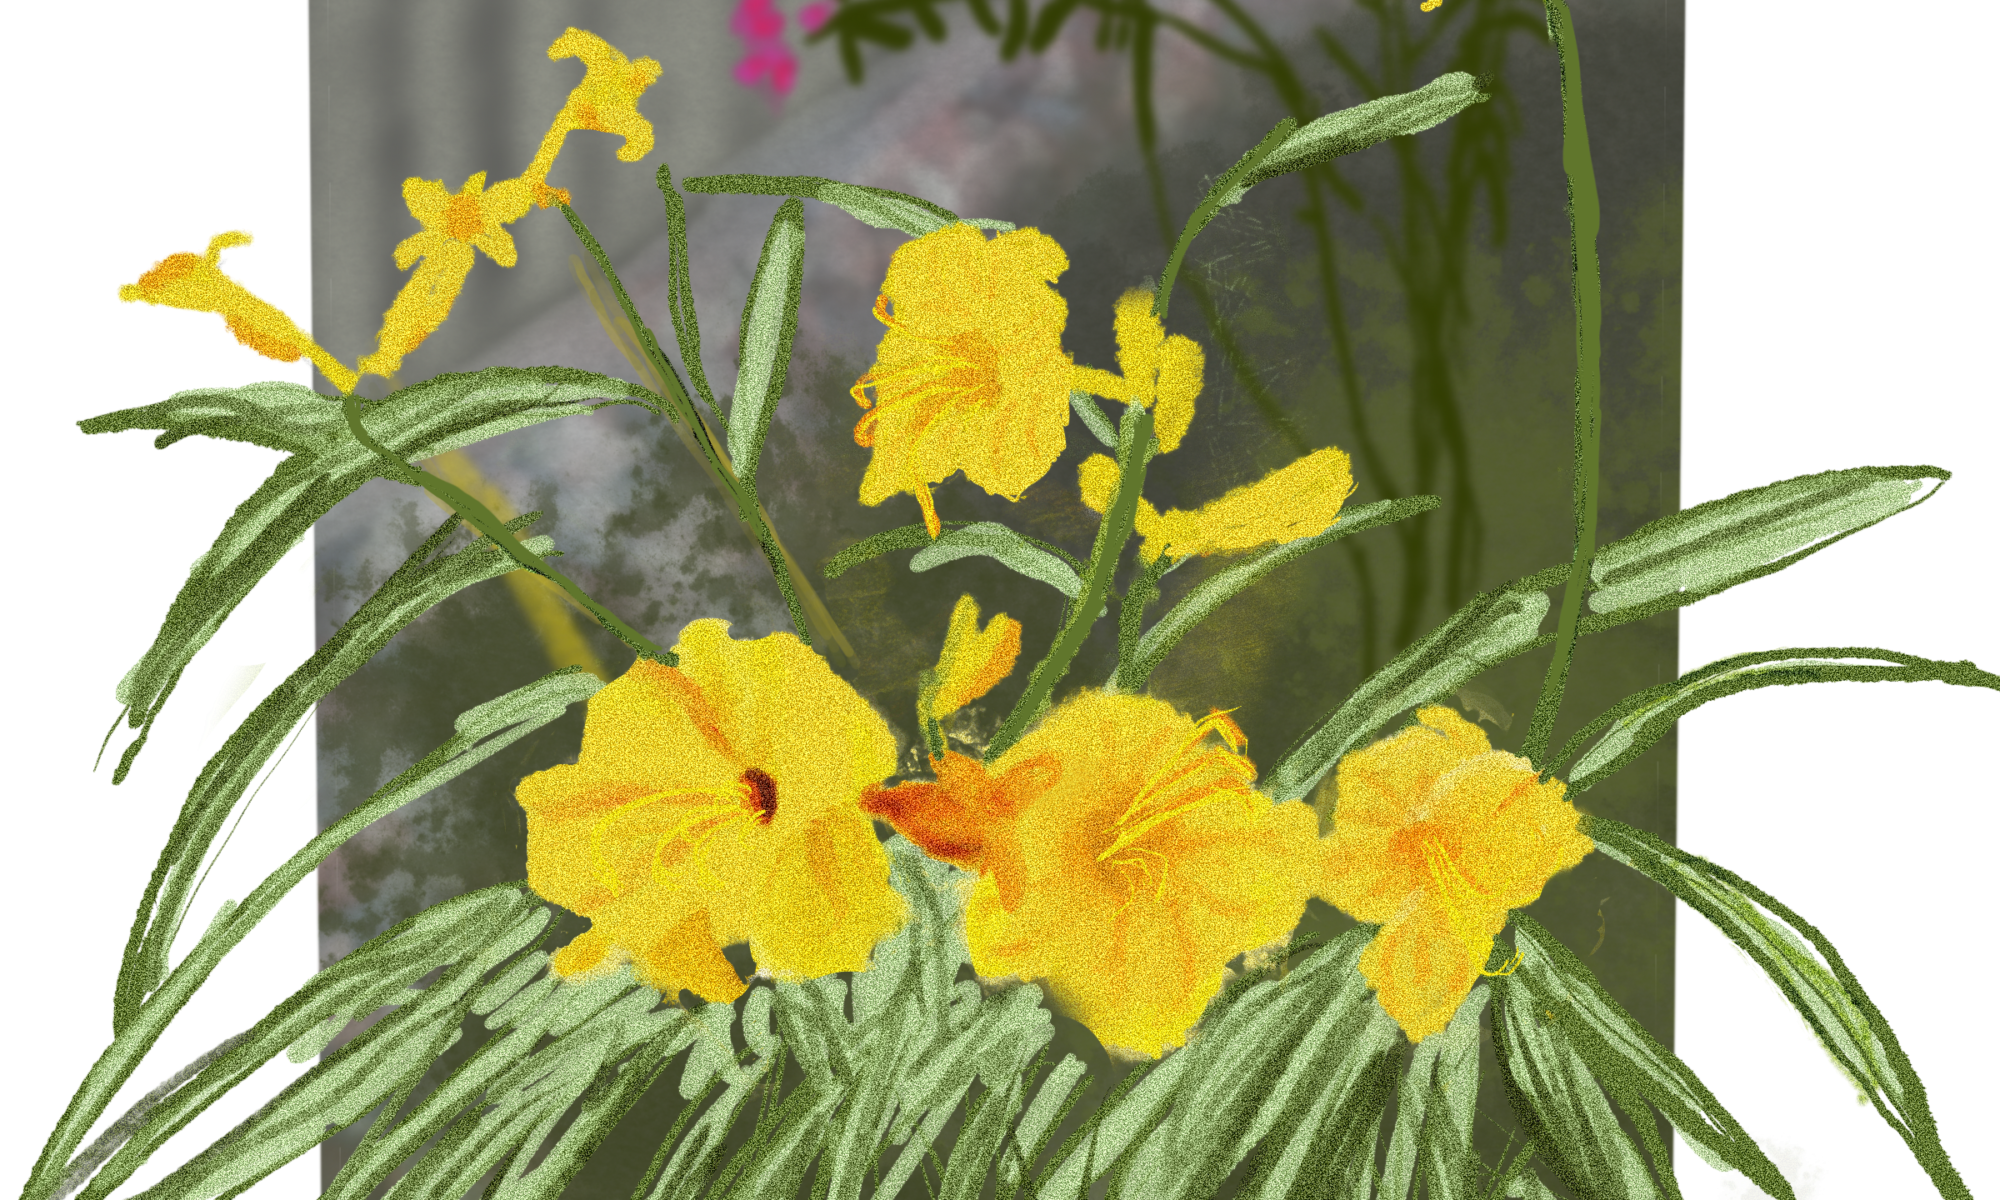 digital painting of a cluster of 3 stella d'oro flowers, with some more behind it and some tiny pink flowers further in back, all within a white mat. there's an illusion of the leaves of the stellas popping out of the frame